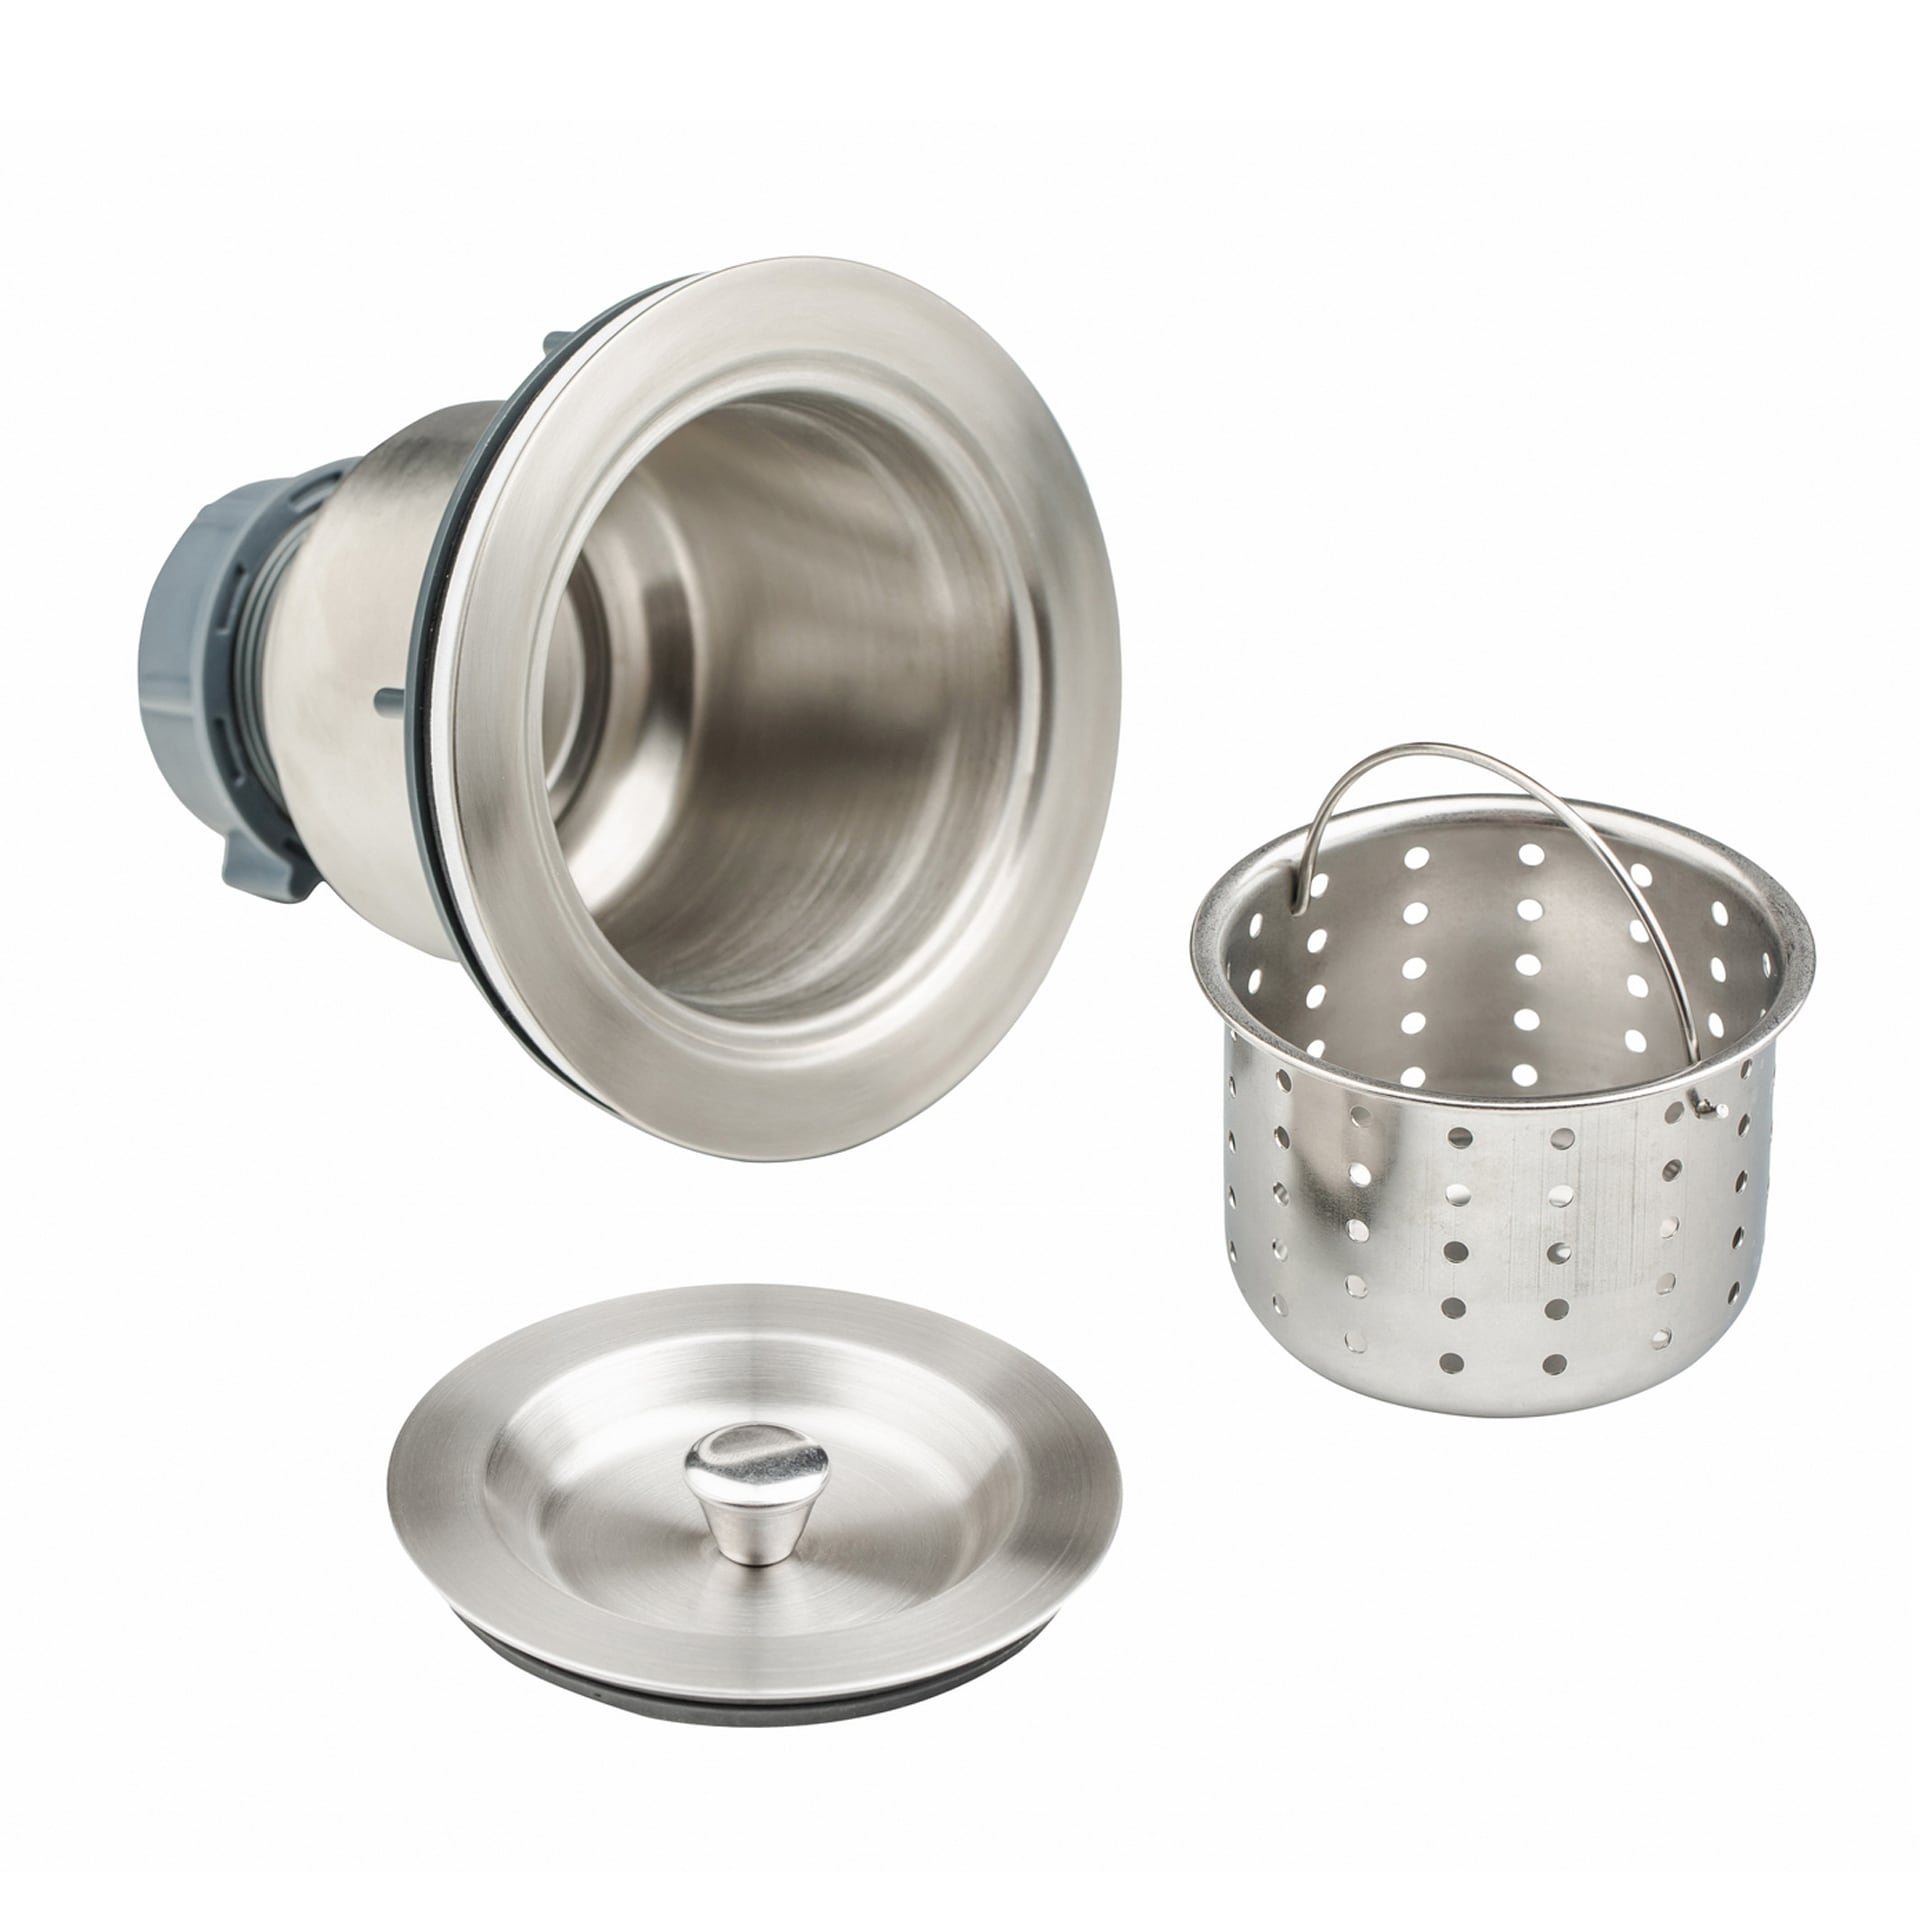 Picture of: Shop 3 1 2 In Kitchen Sink Drain Assembly In Stainless Steel With Basket Strainer And Cover Overstock 31310841